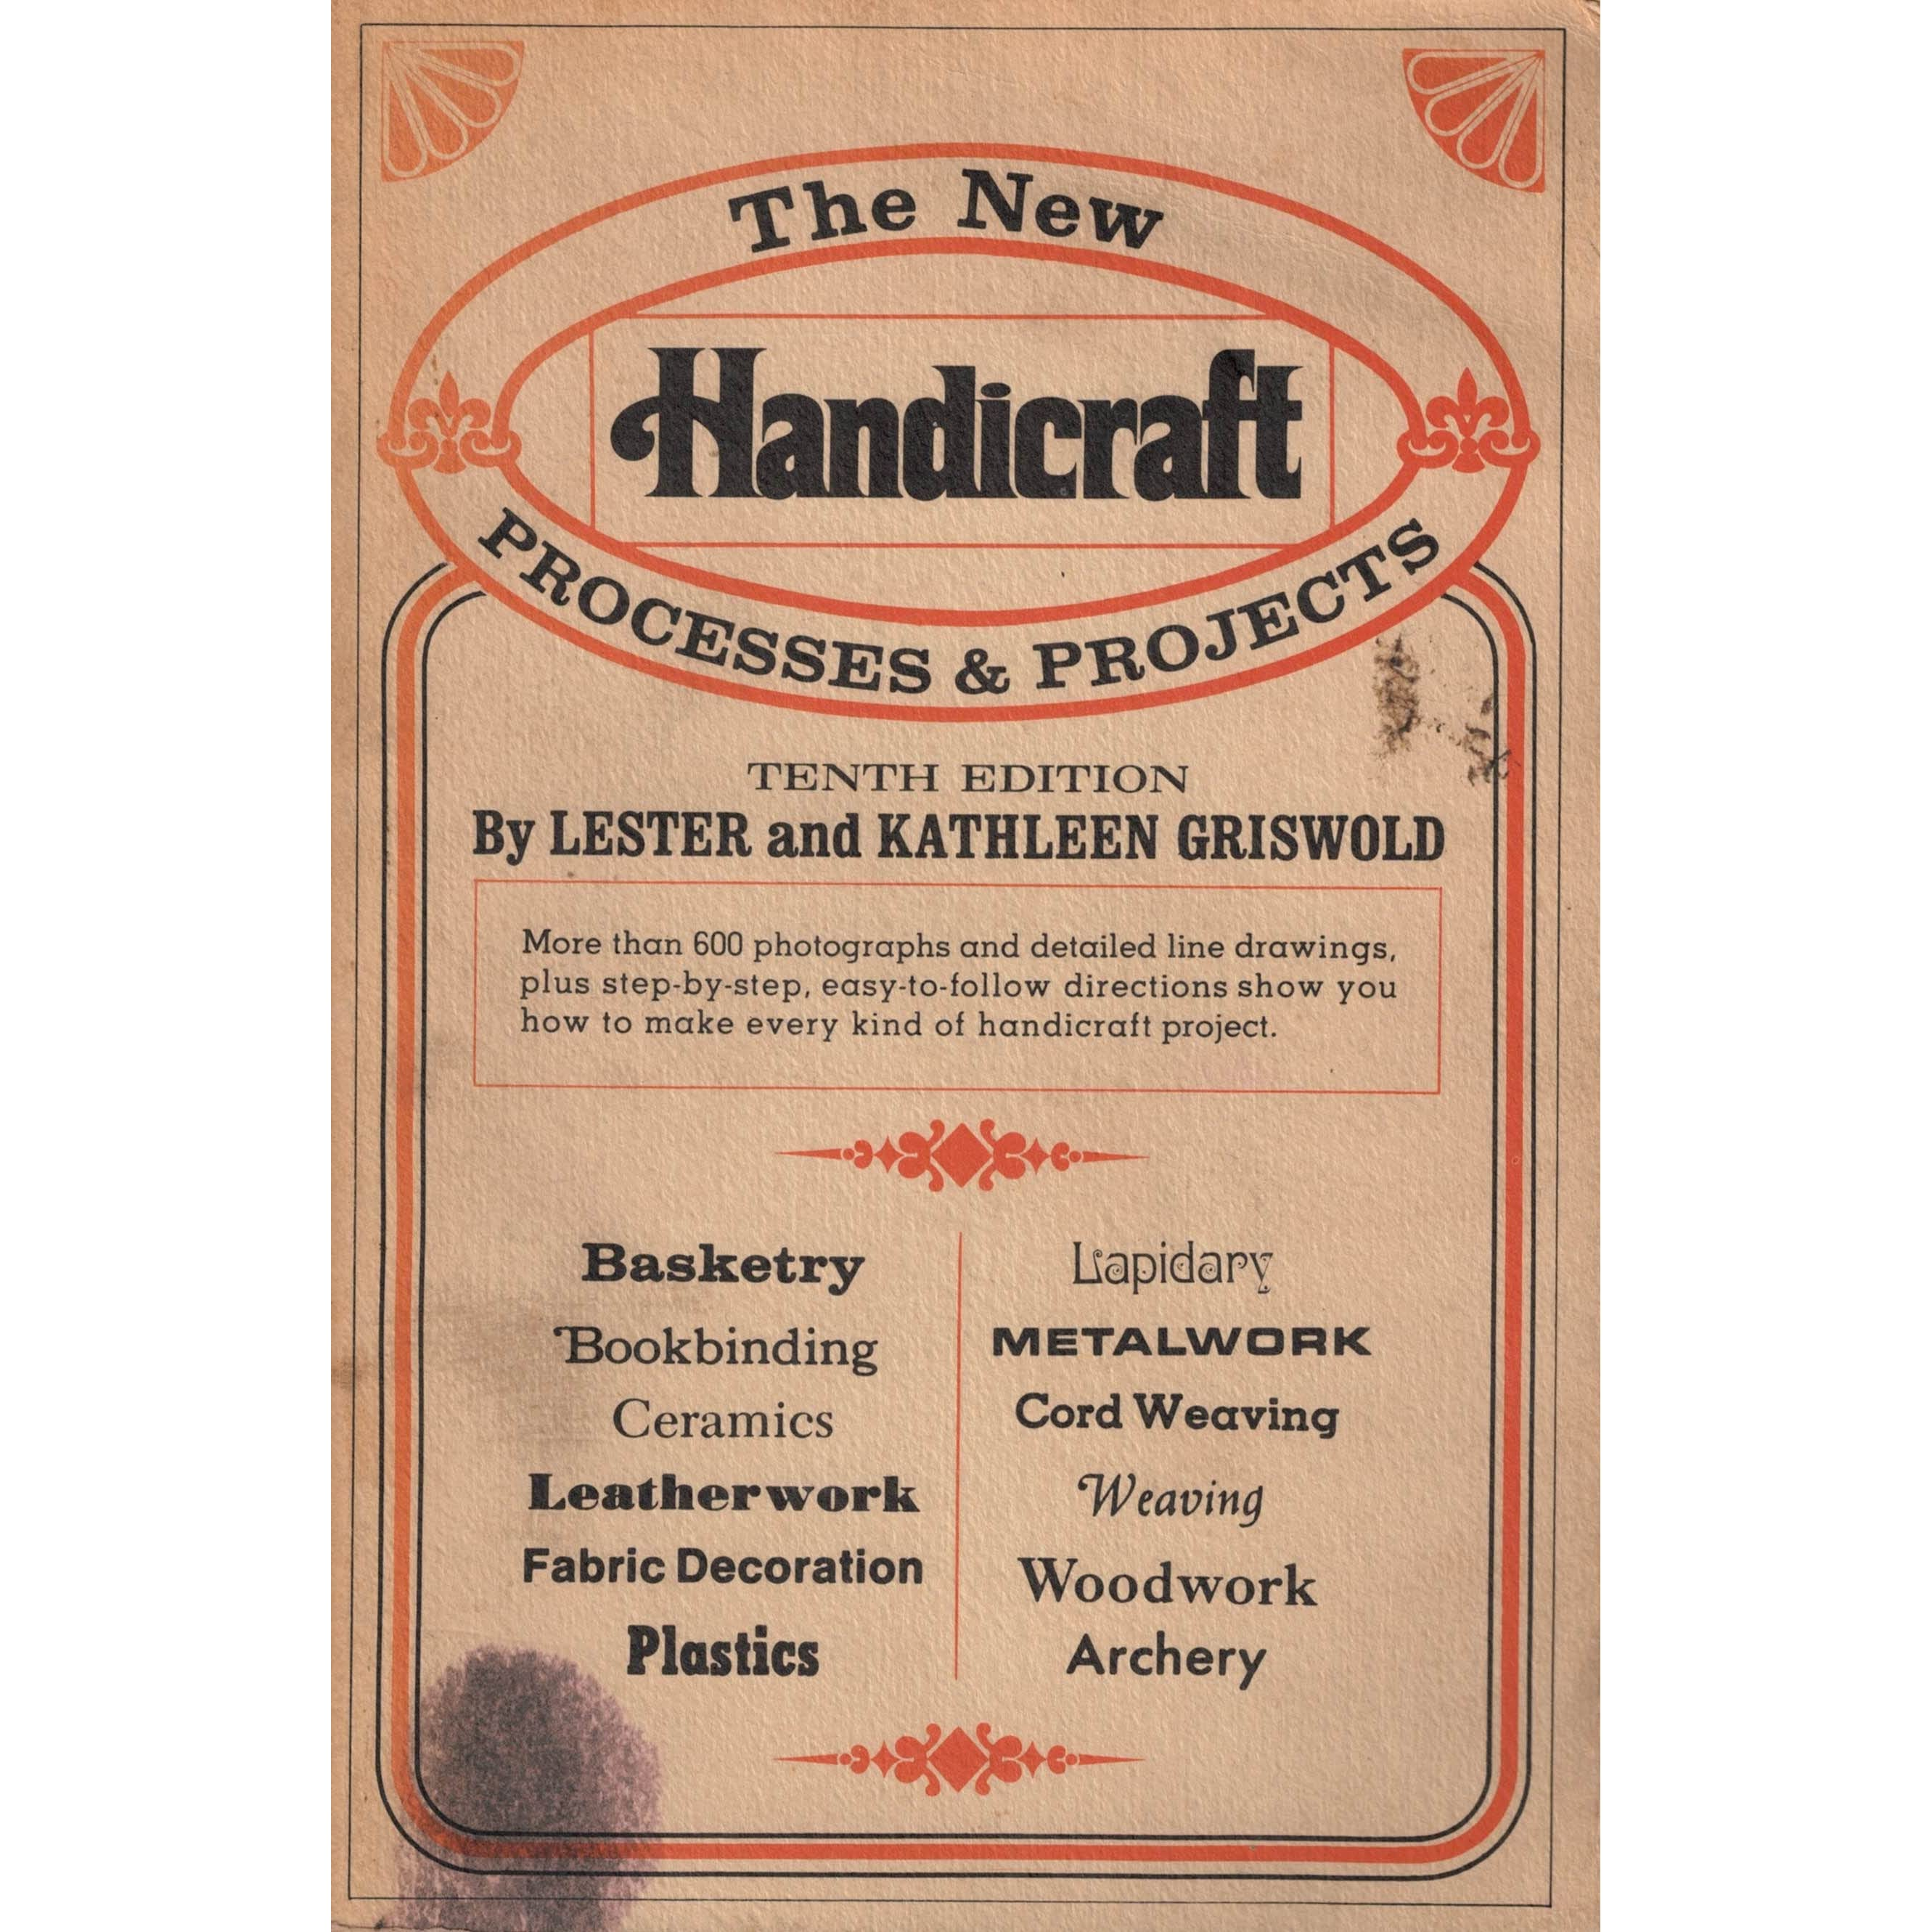 The New Handicraft Processes And Projects By Lester Griswold